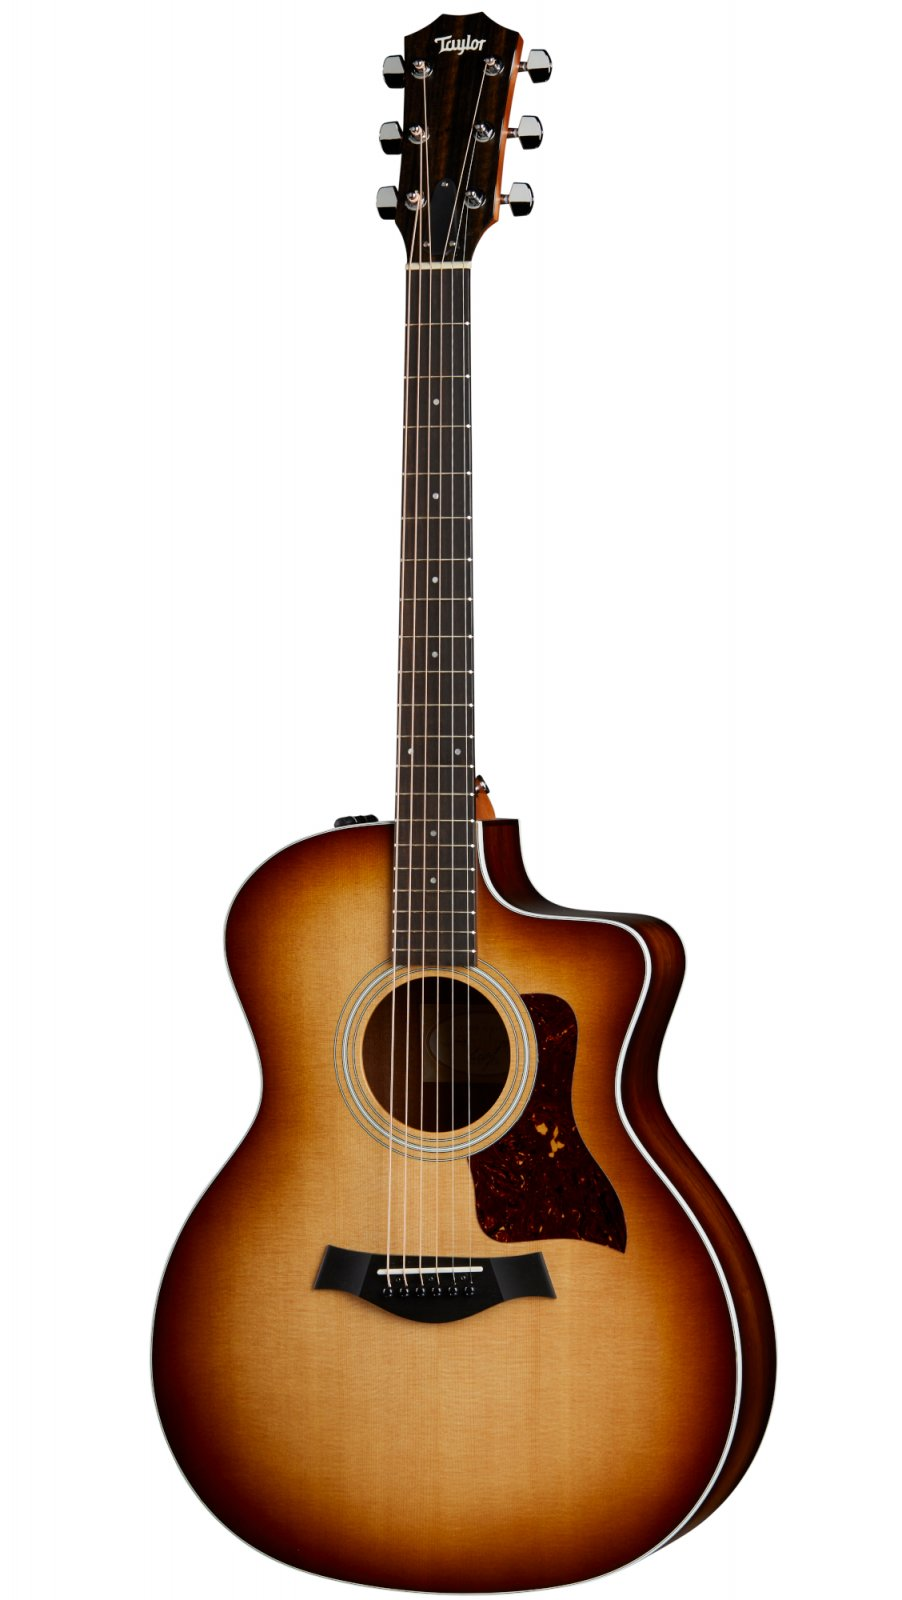 Taylor 214ce-K SB Koa Sunburst Acoustic/Electric Guitar with Cutaway and Soft Shell Case